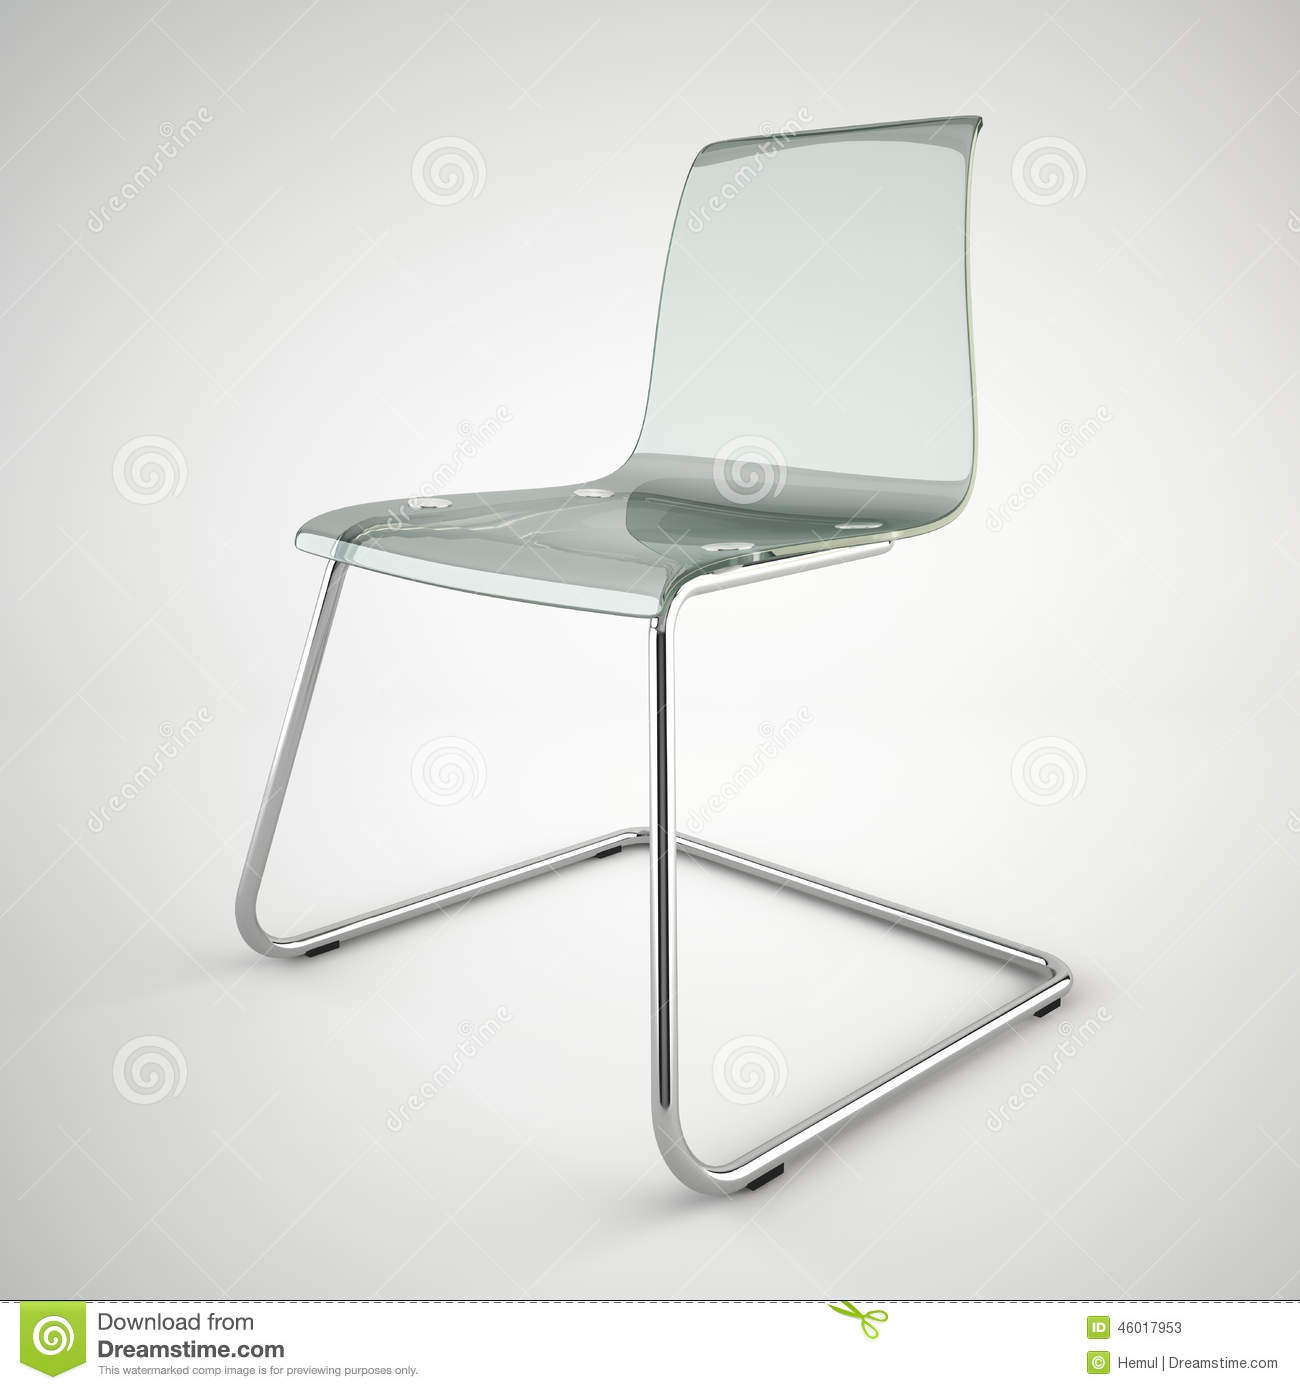 modern ikea glass chair isolated on white background stock image image of simple white 46017953. Black Bedroom Furniture Sets. Home Design Ideas